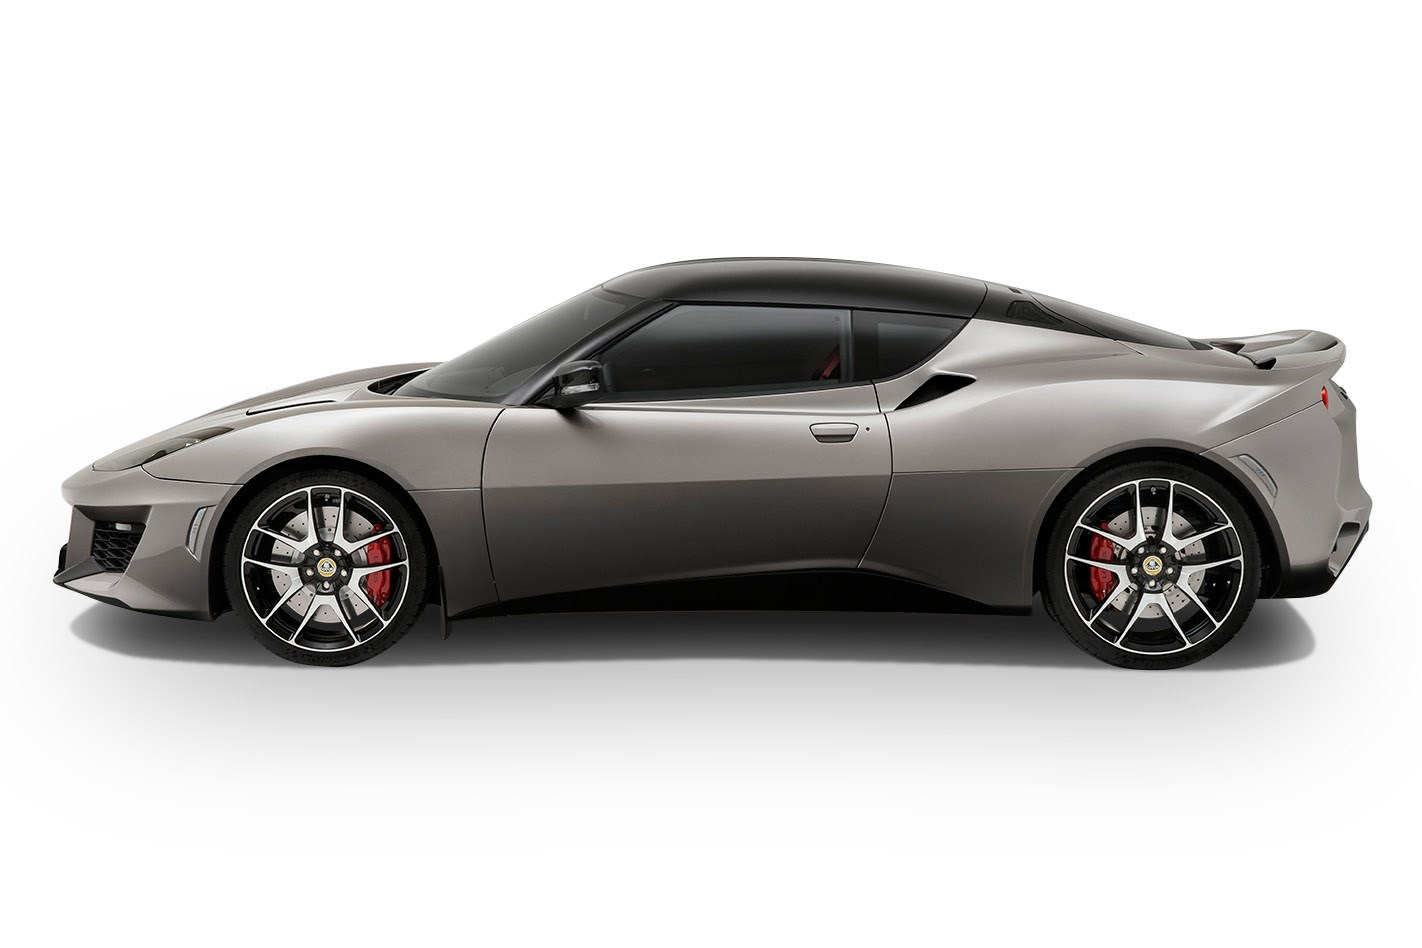 2019 Lotus Evora 400 3 5l 6cyl Petrol Supercharged Automatic Coupe